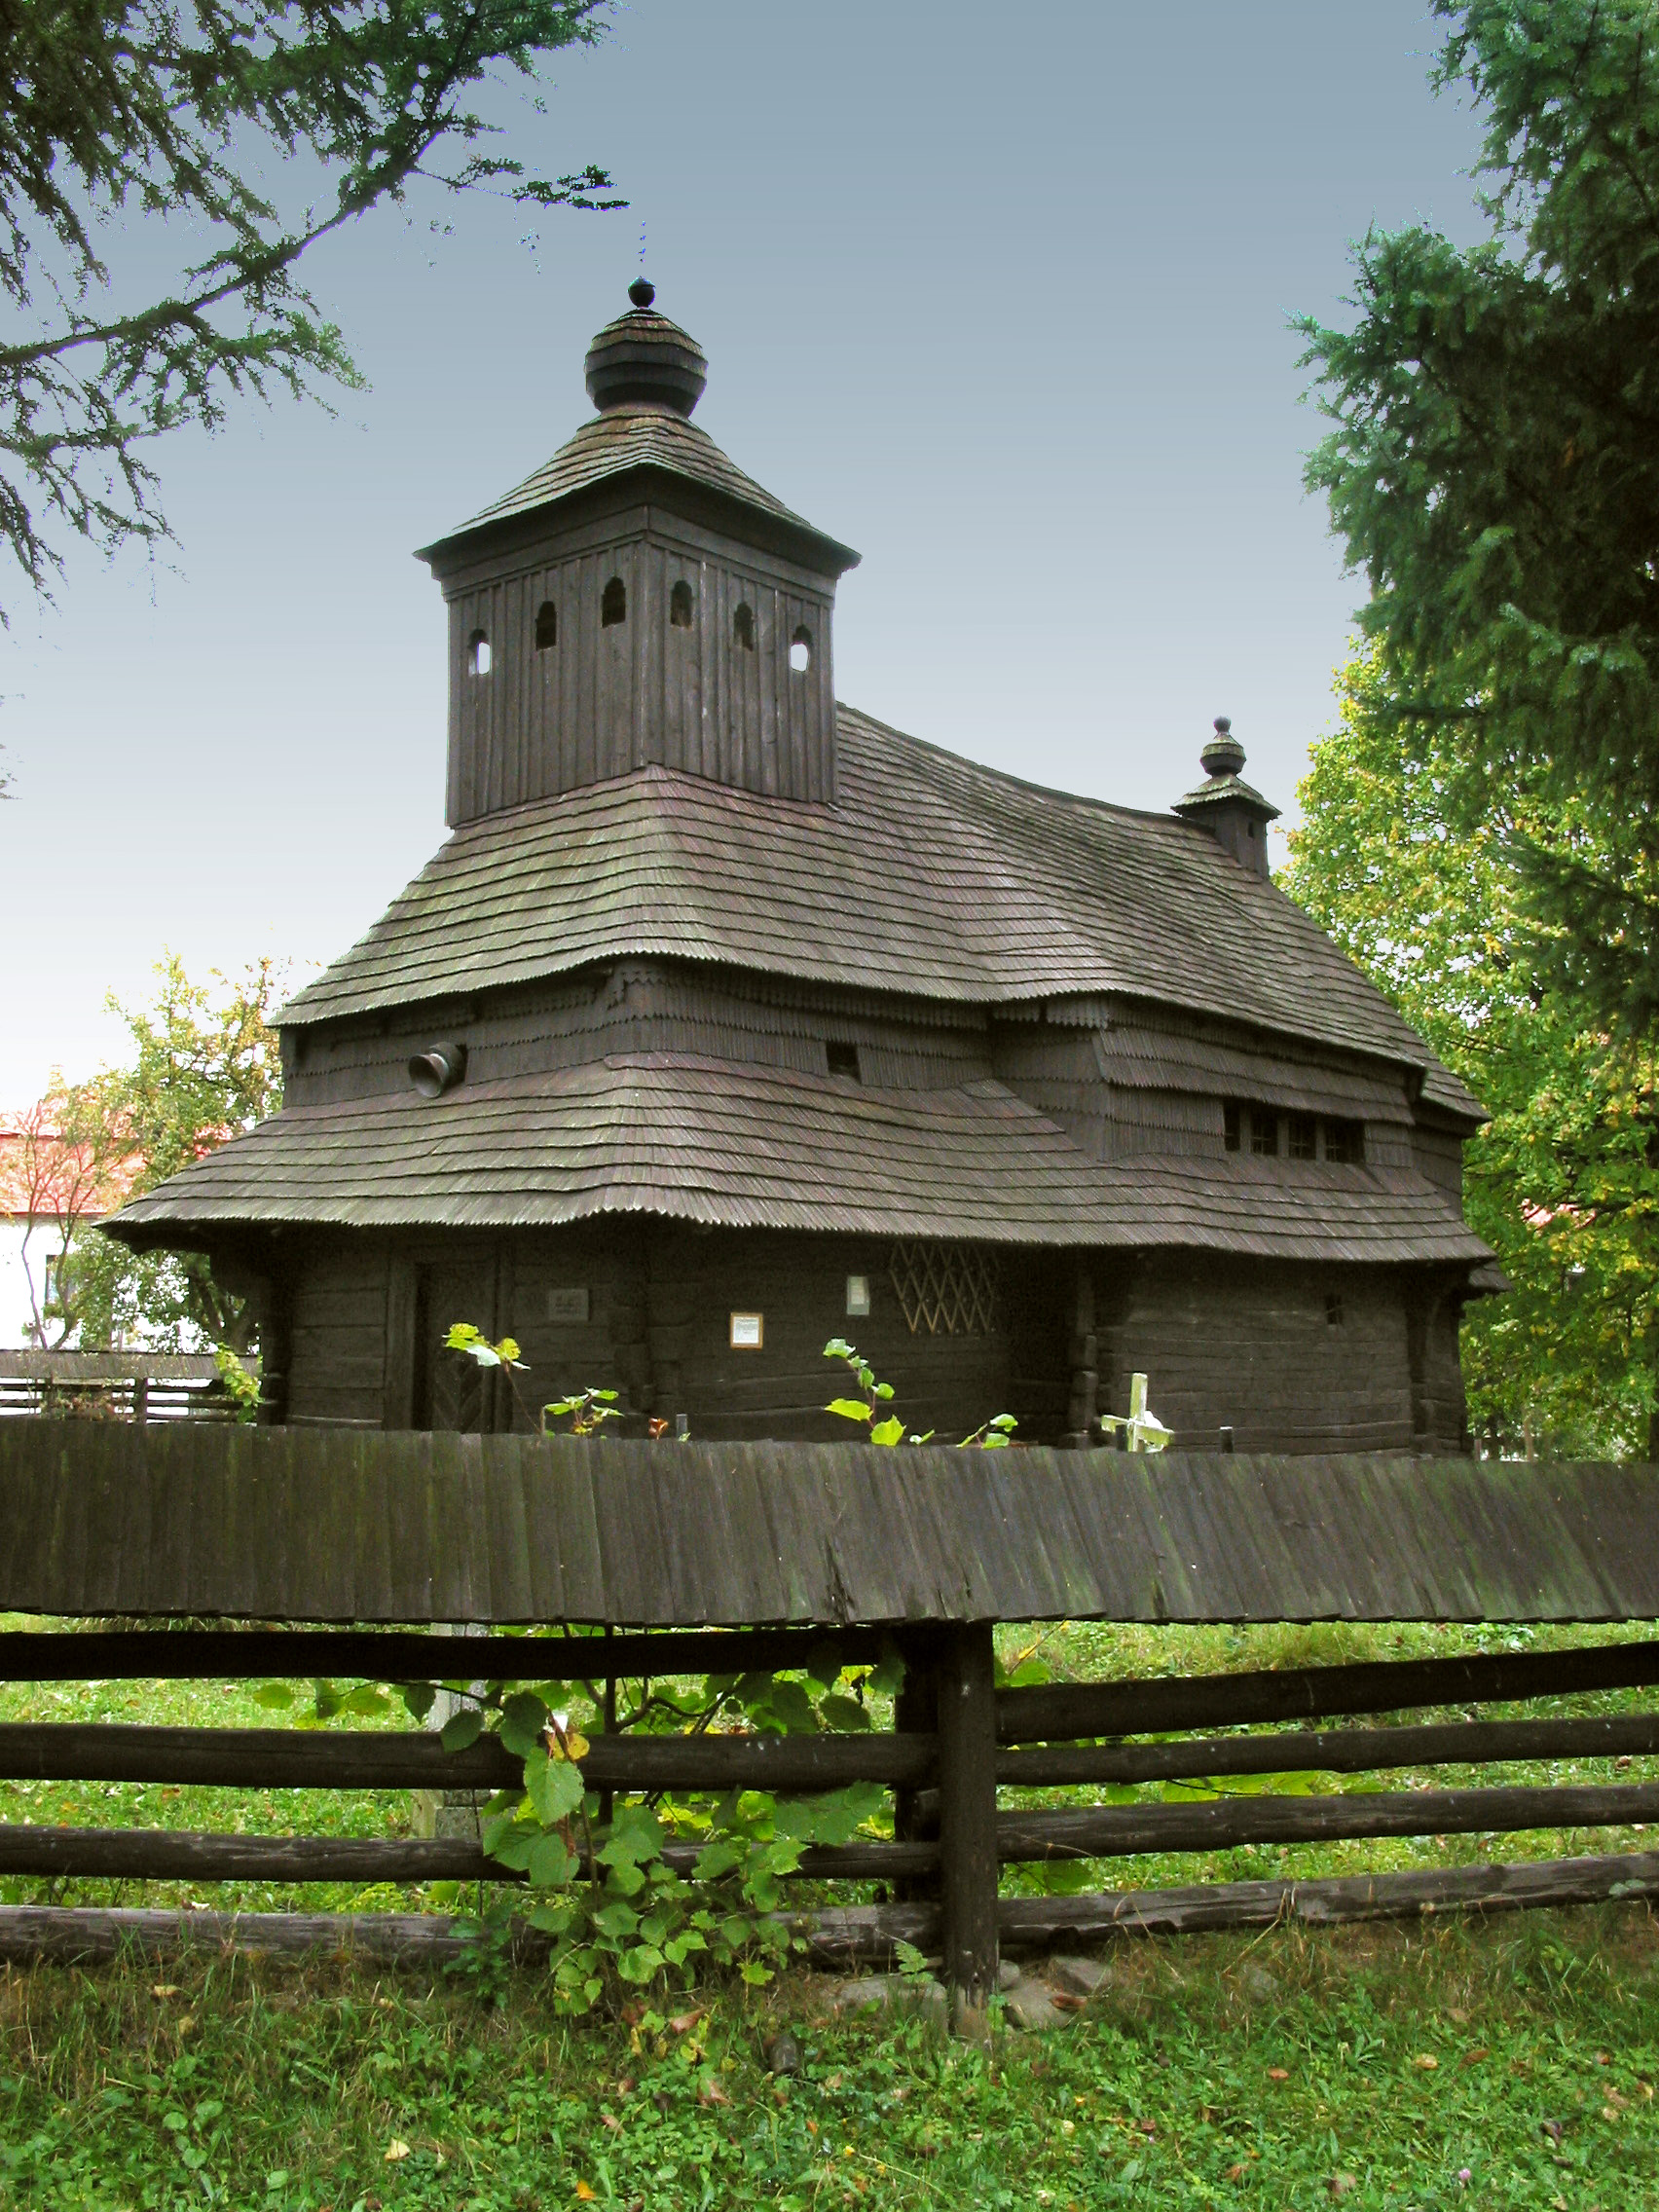 Greek Catholic Wooden Church of St Michael the Archangel at Uličské Krivé (photo by Peter Fratrič)